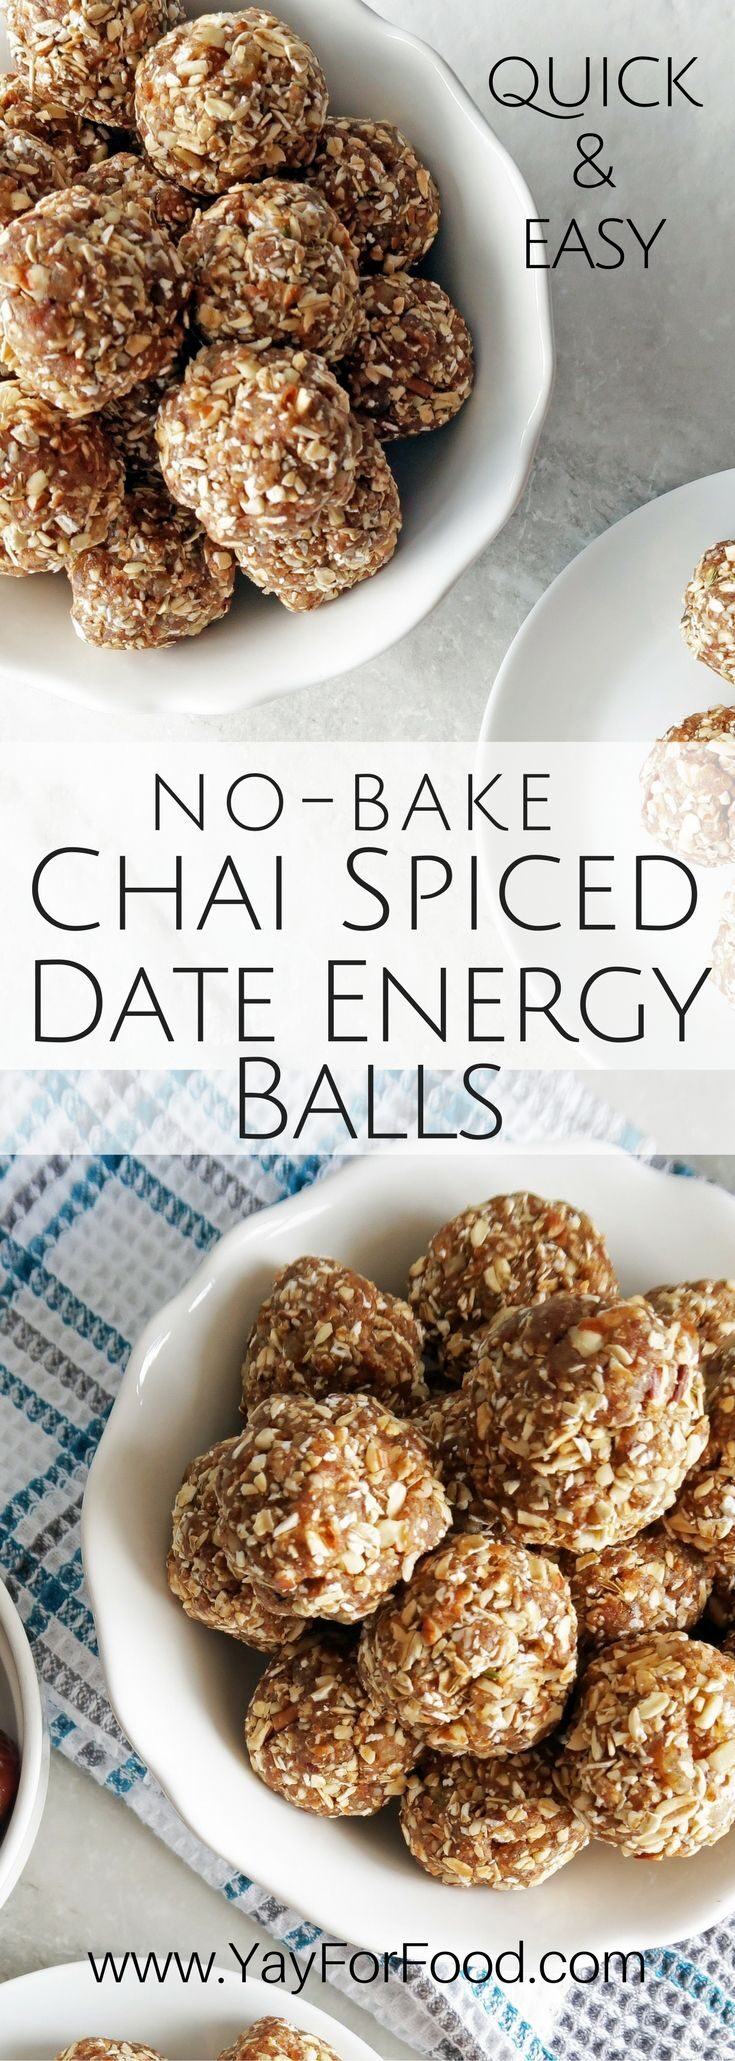 Snack on these tasty, portable chai-spiced Medjool date energy balls with dried peaches, pecans, and rolled oats! No baking required, takes only 15 minutes!